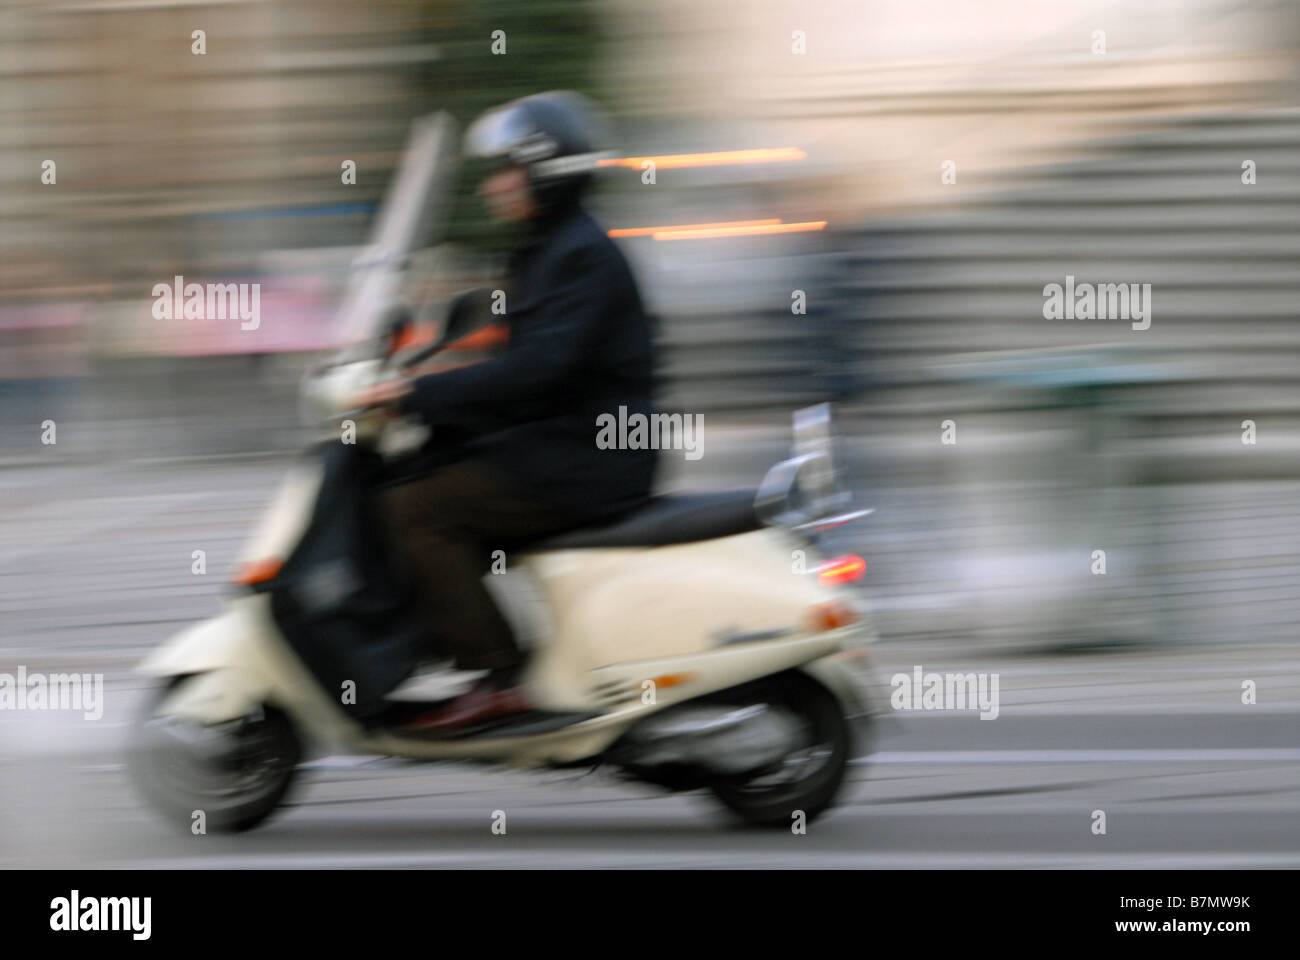 A scooter rider on Via XX Septembre, Turin, Piedmont, Italy. - Stock Image